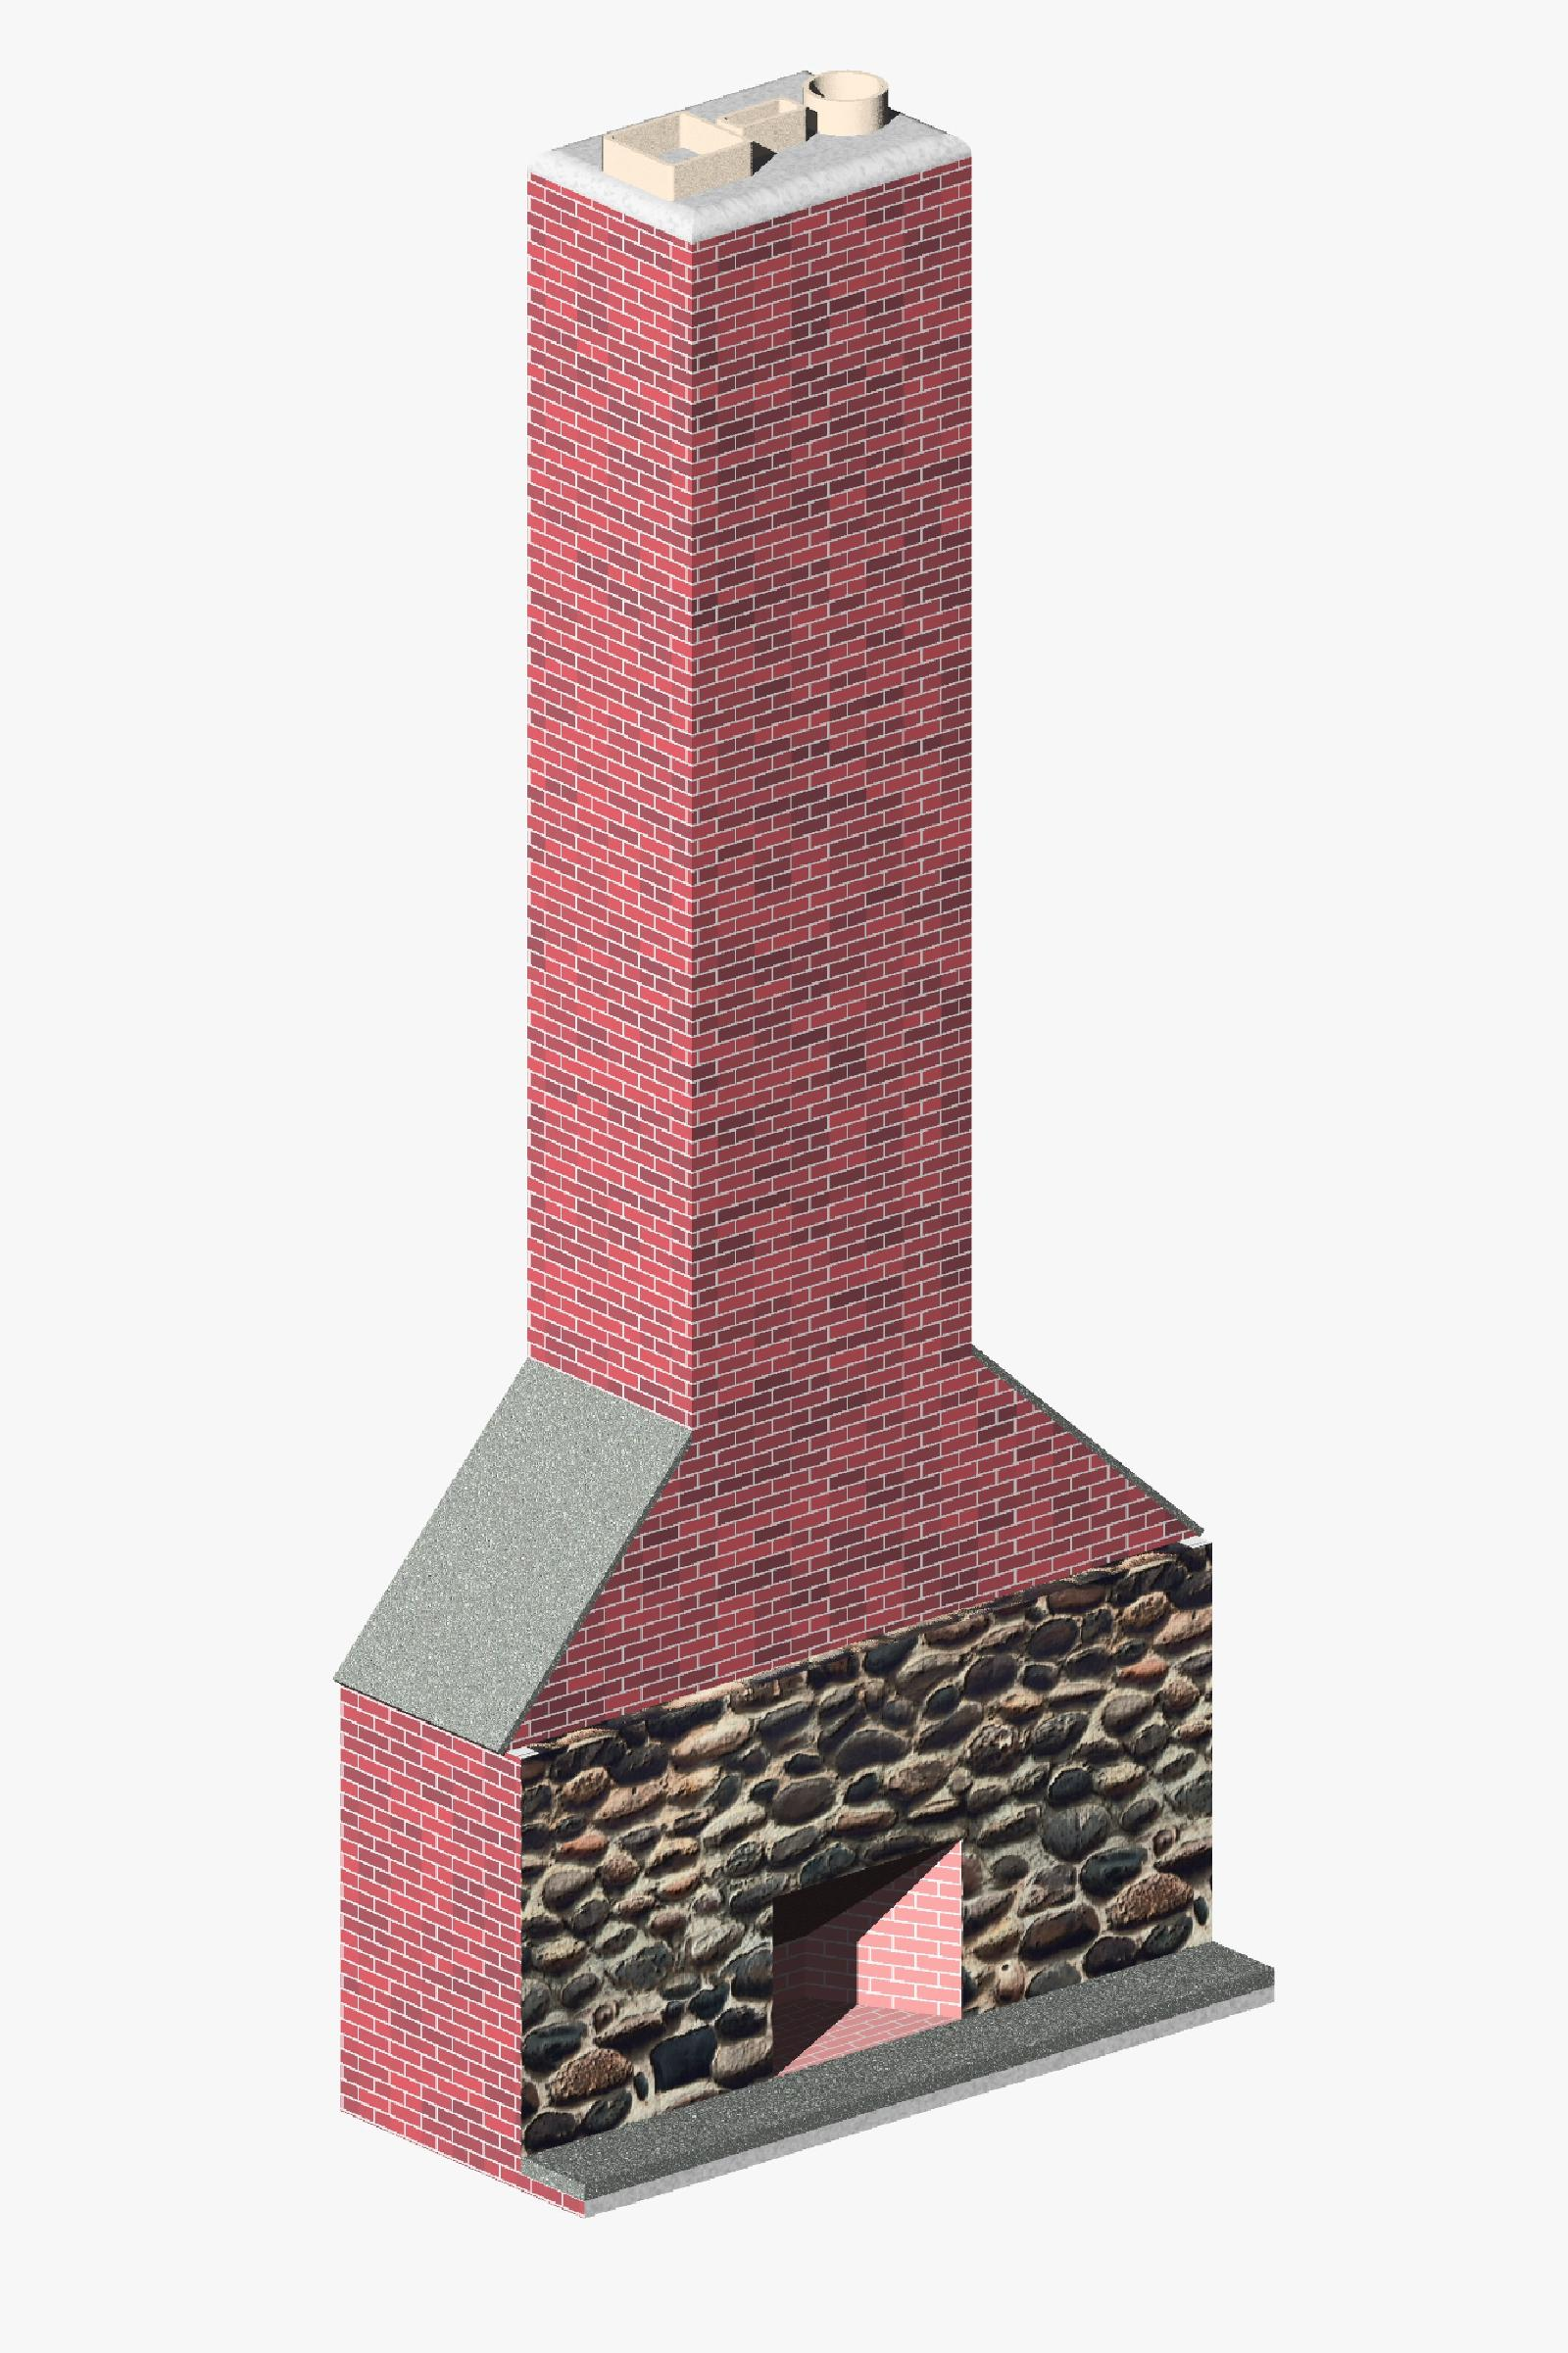 fireplace and chimney. BIM content Objects  Families